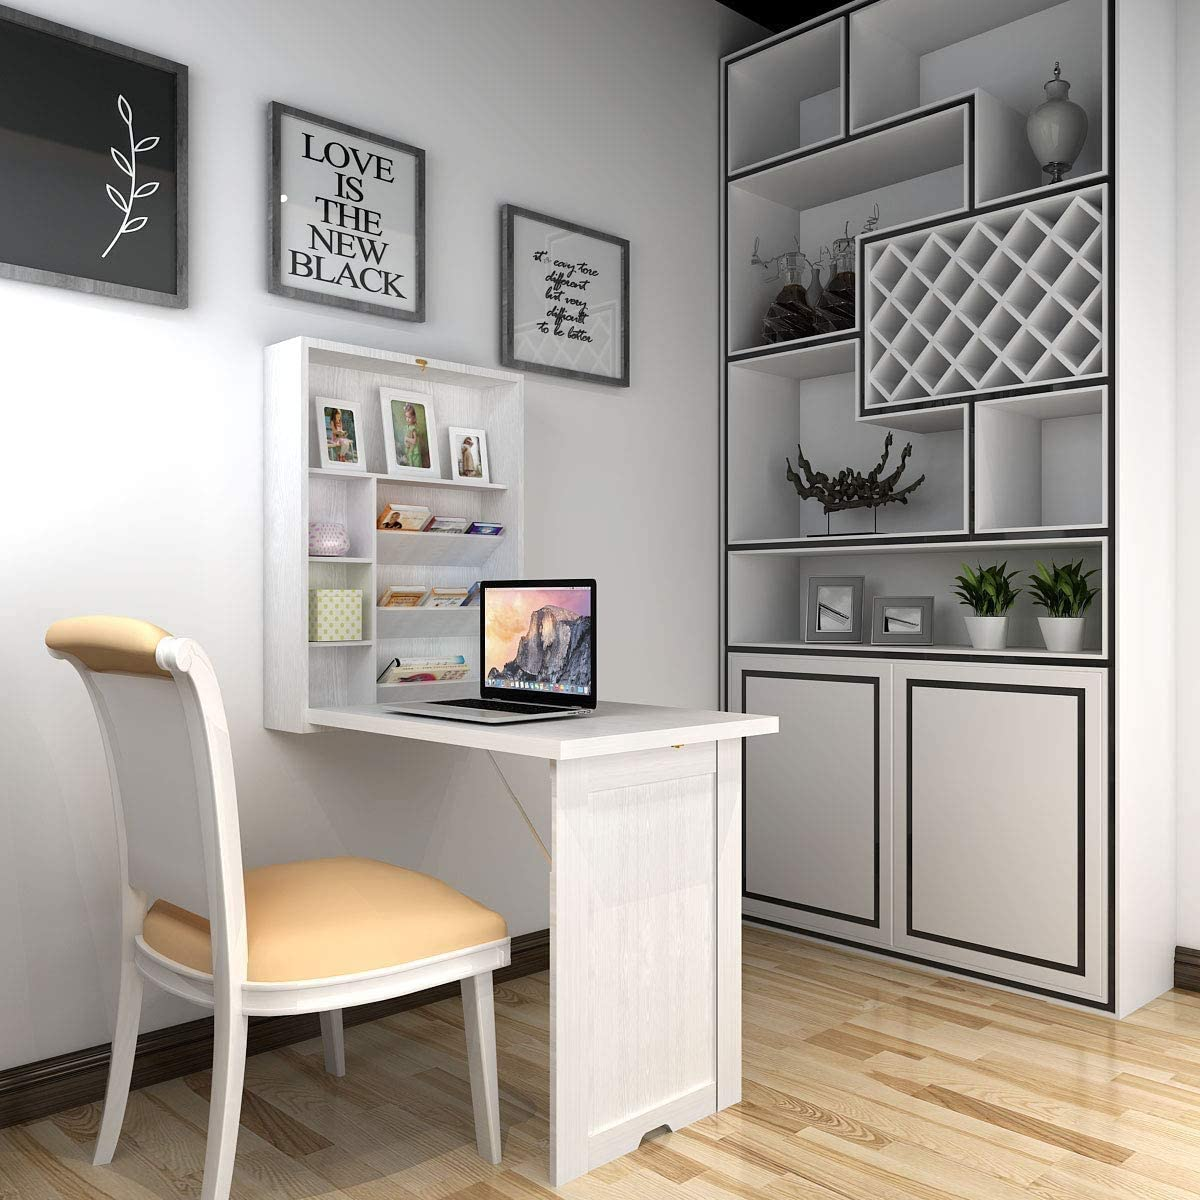 ARLIME Wall Mounted Table, Classified Storage Desk, Foldable Multiple-Purpose Table, Work Station with Storage Shelves, Floating Convertible Cabinet, for Apartment, Home Office Desks (White)